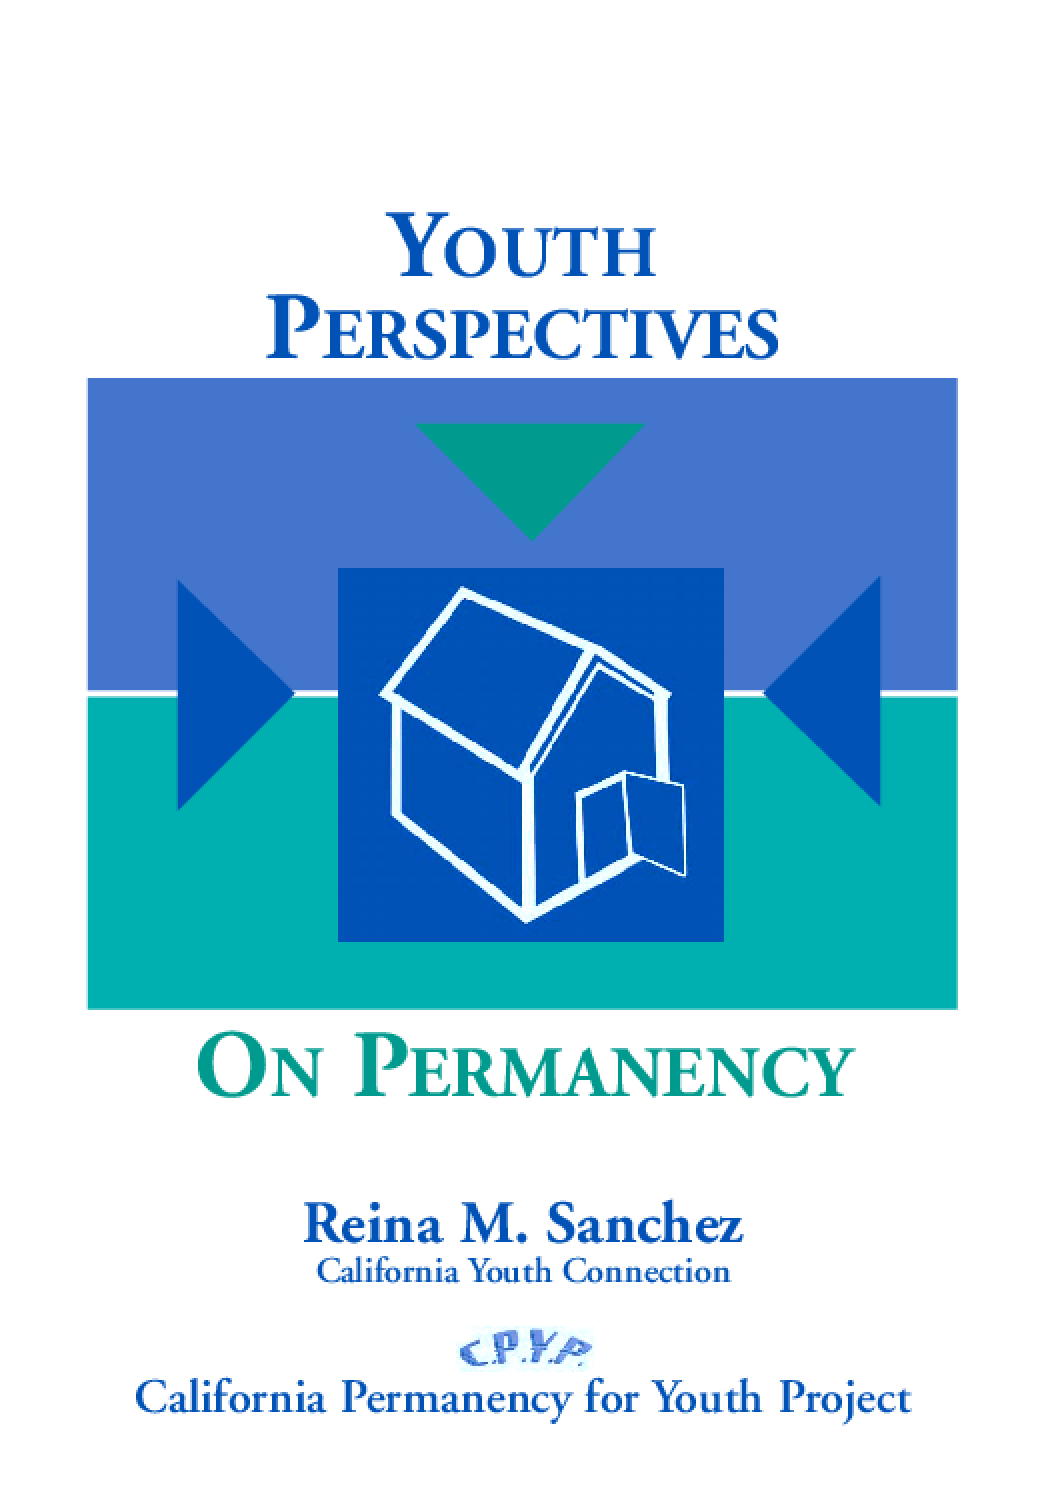 Youth Perspectives on Permanency